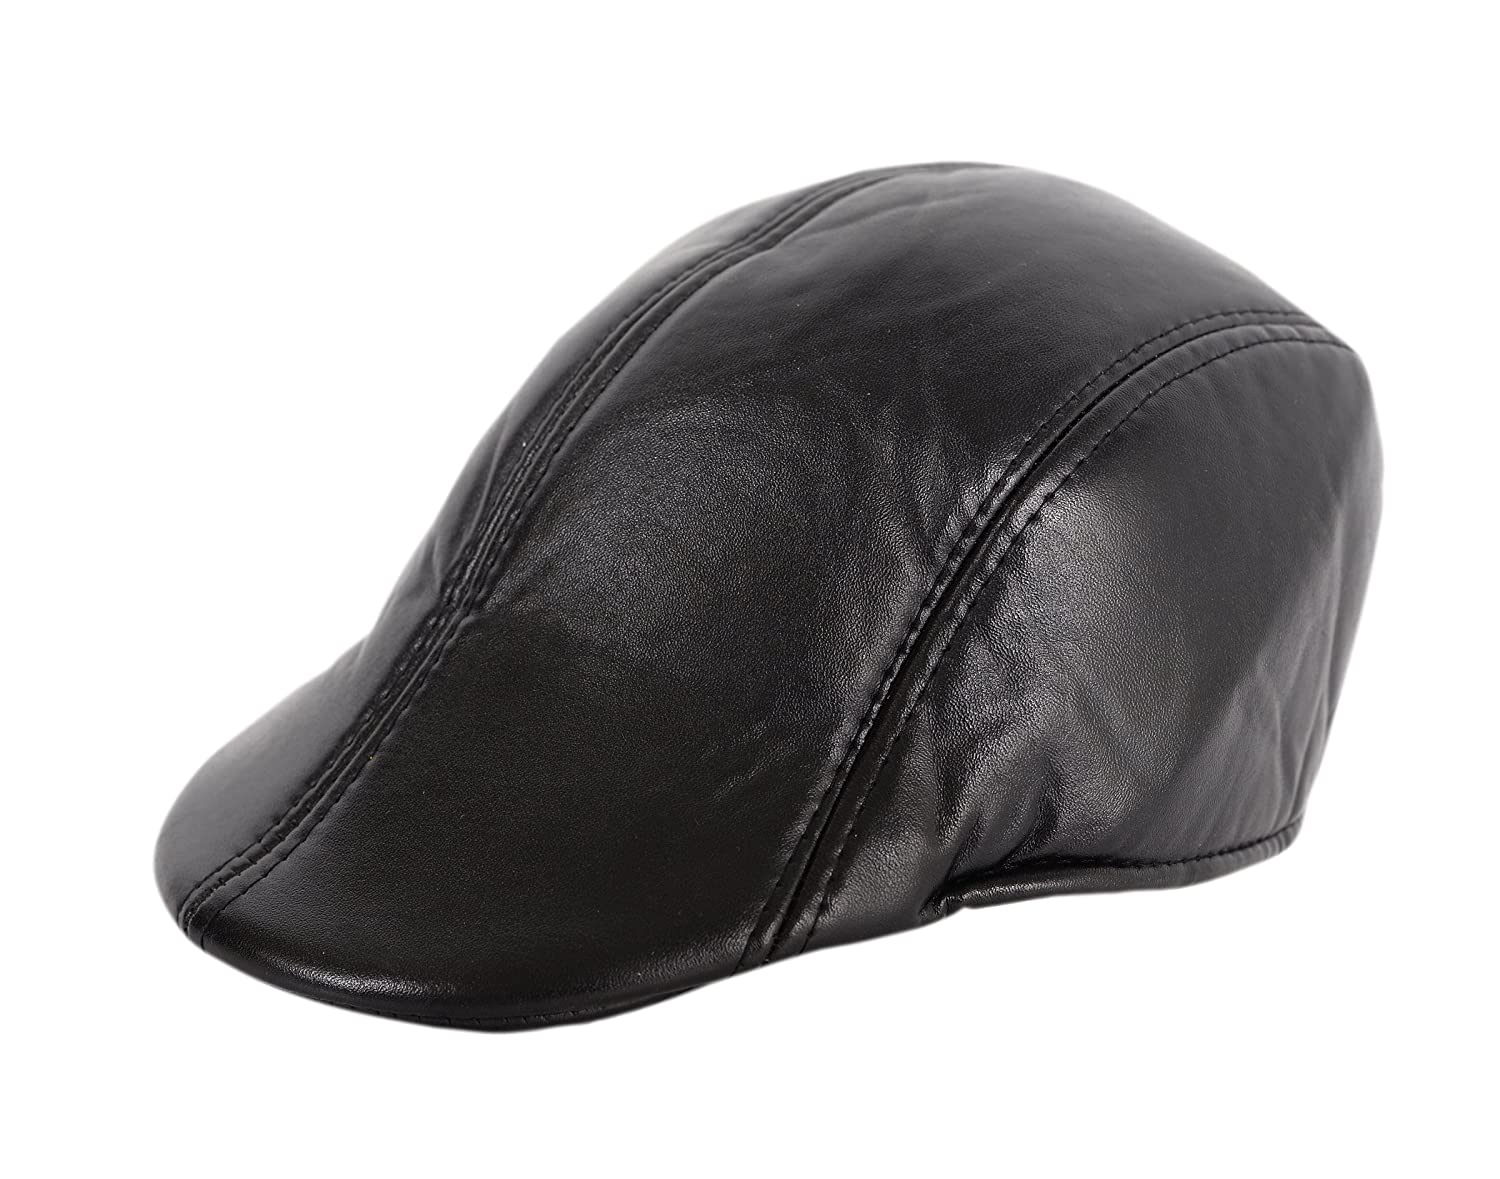 Krystle Men s Black Leather Golf Cap  Amazon.in  Clothing   Accessories 0784411a0c2